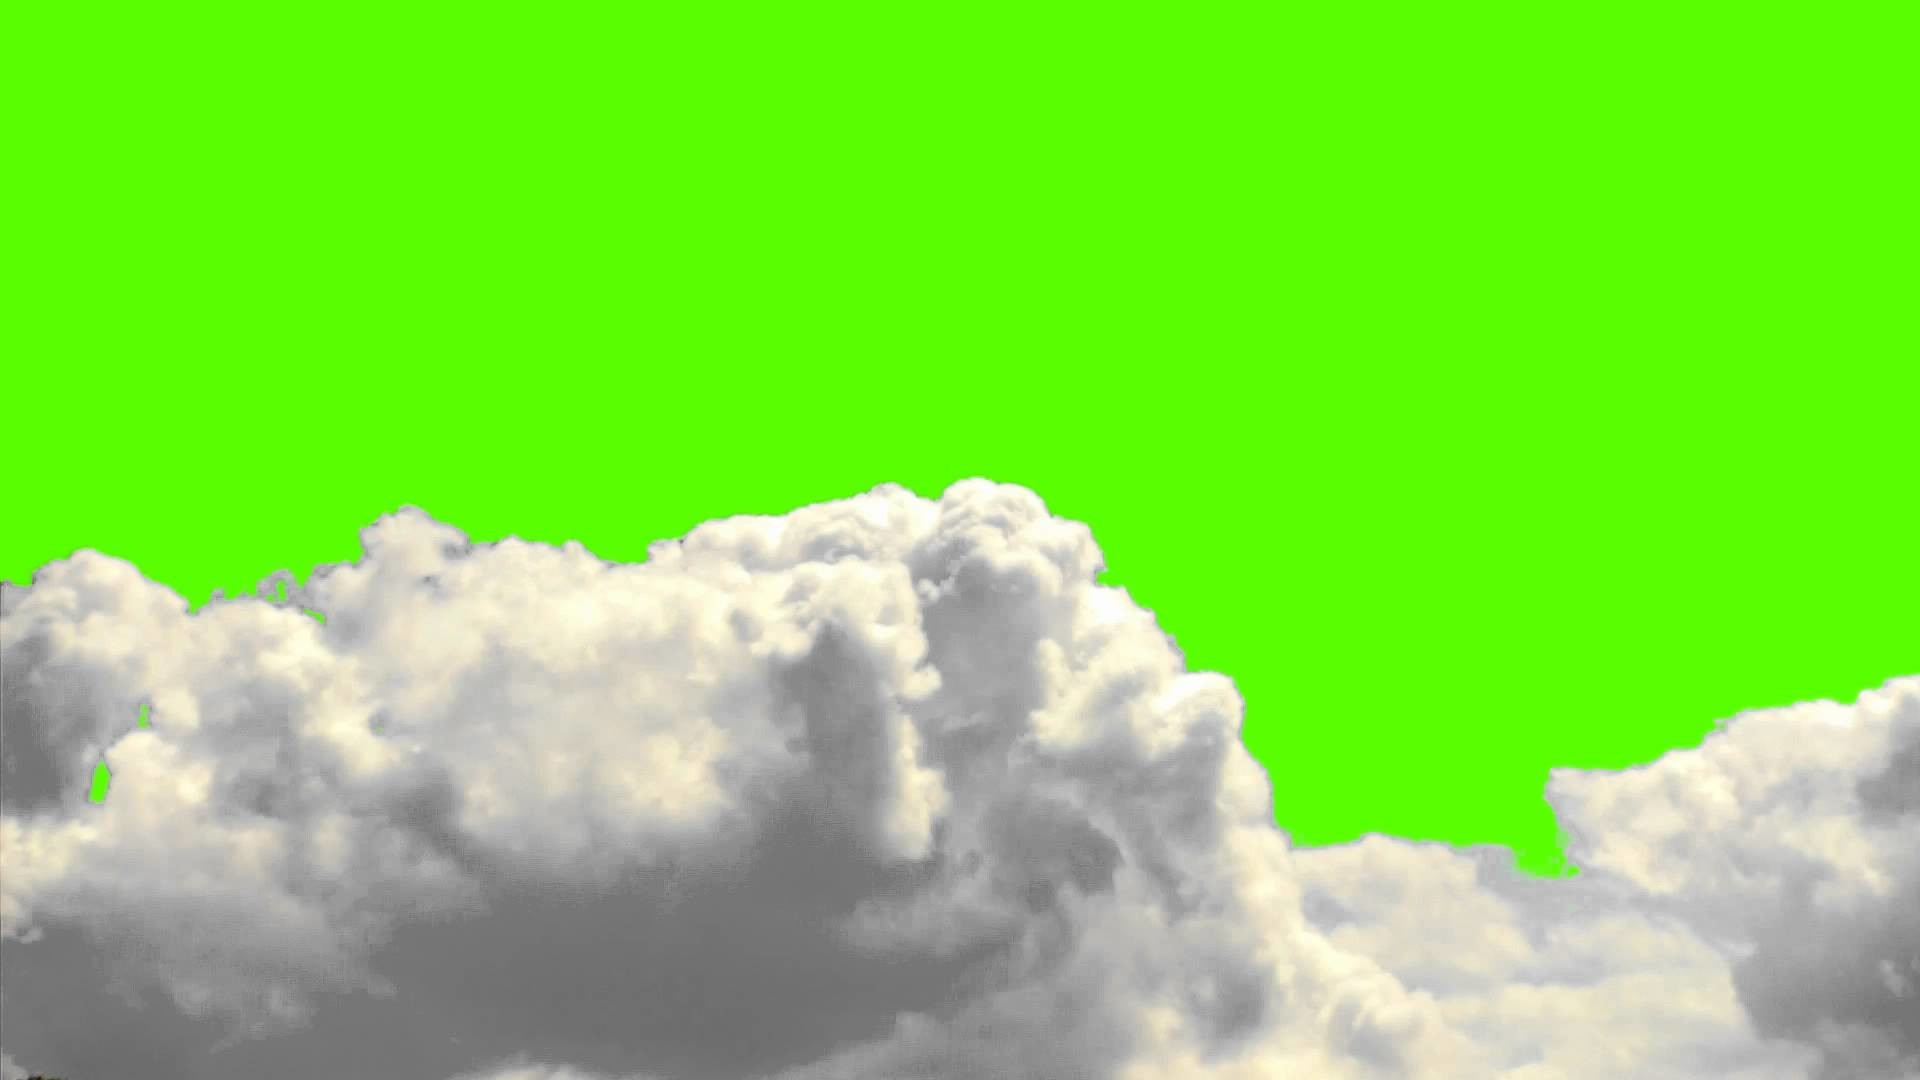 1920x1080 Real Clouds on a Green Screen Background - Free Royalty Stock Footage and  Animation.mp4 - YouTube